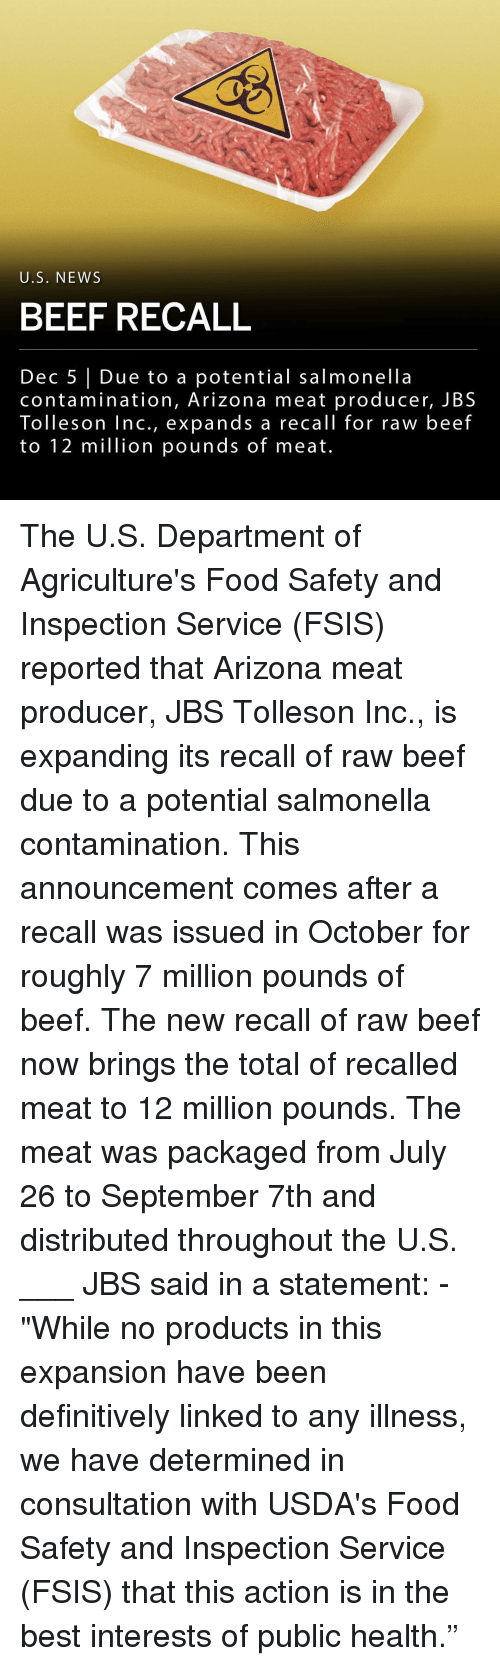 """Beef, Food, and Memes: U.S. NEWS  BEEF RECALL  Dec 5 Due to a potential salmonella  contamination, Arizona meat producer, JBS  Tolleson lnc., expands a recall for raw beef  to 12 million pounds of meat. The U.S. Department of Agriculture's Food Safety and Inspection Service (FSIS) reported that Arizona meat producer, JBS Tolleson Inc., is expanding its recall of raw beef due to a potential salmonella contamination. This announcement comes after a recall was issued in October for roughly 7 million pounds of beef. The new recall of raw beef now brings the total of recalled meat to 12 million pounds. The meat was packaged from July 26 to September 7th and distributed throughout the U.S. ___ JBS said in a statement: - """"While no products in this expansion have been definitively linked to any illness, we have determined in consultation with USDA's Food Safety and Inspection Service (FSIS) that this action is in the best interests of public health."""""""